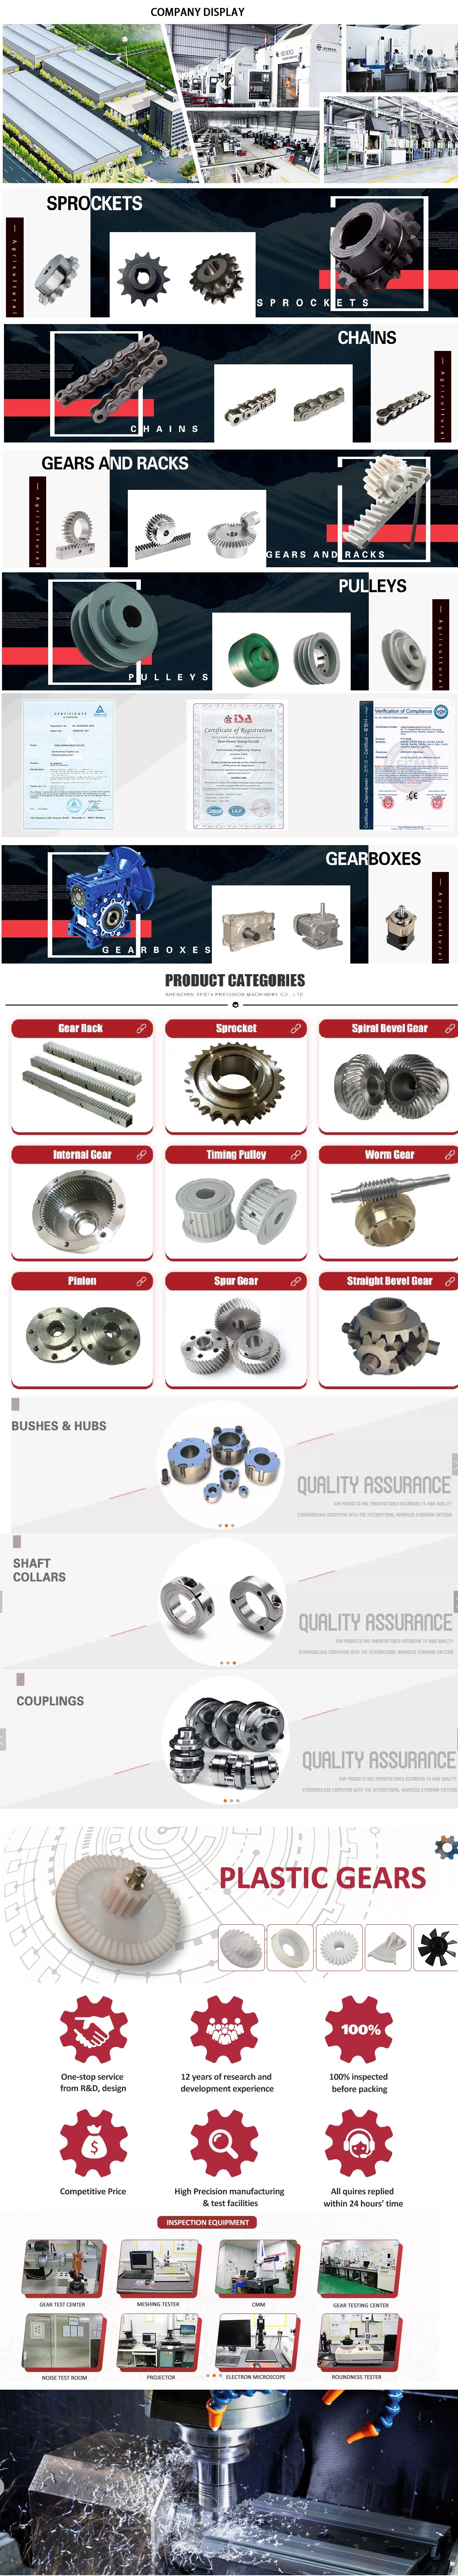 China manufacturer & factory supplier for K  in Ciudad Guayana Venezuela   Series helical-bevel gear box with AD k series gear ratios small 90 degree gearbox motor Speed Reducer dodge transmission With high quality best price & service